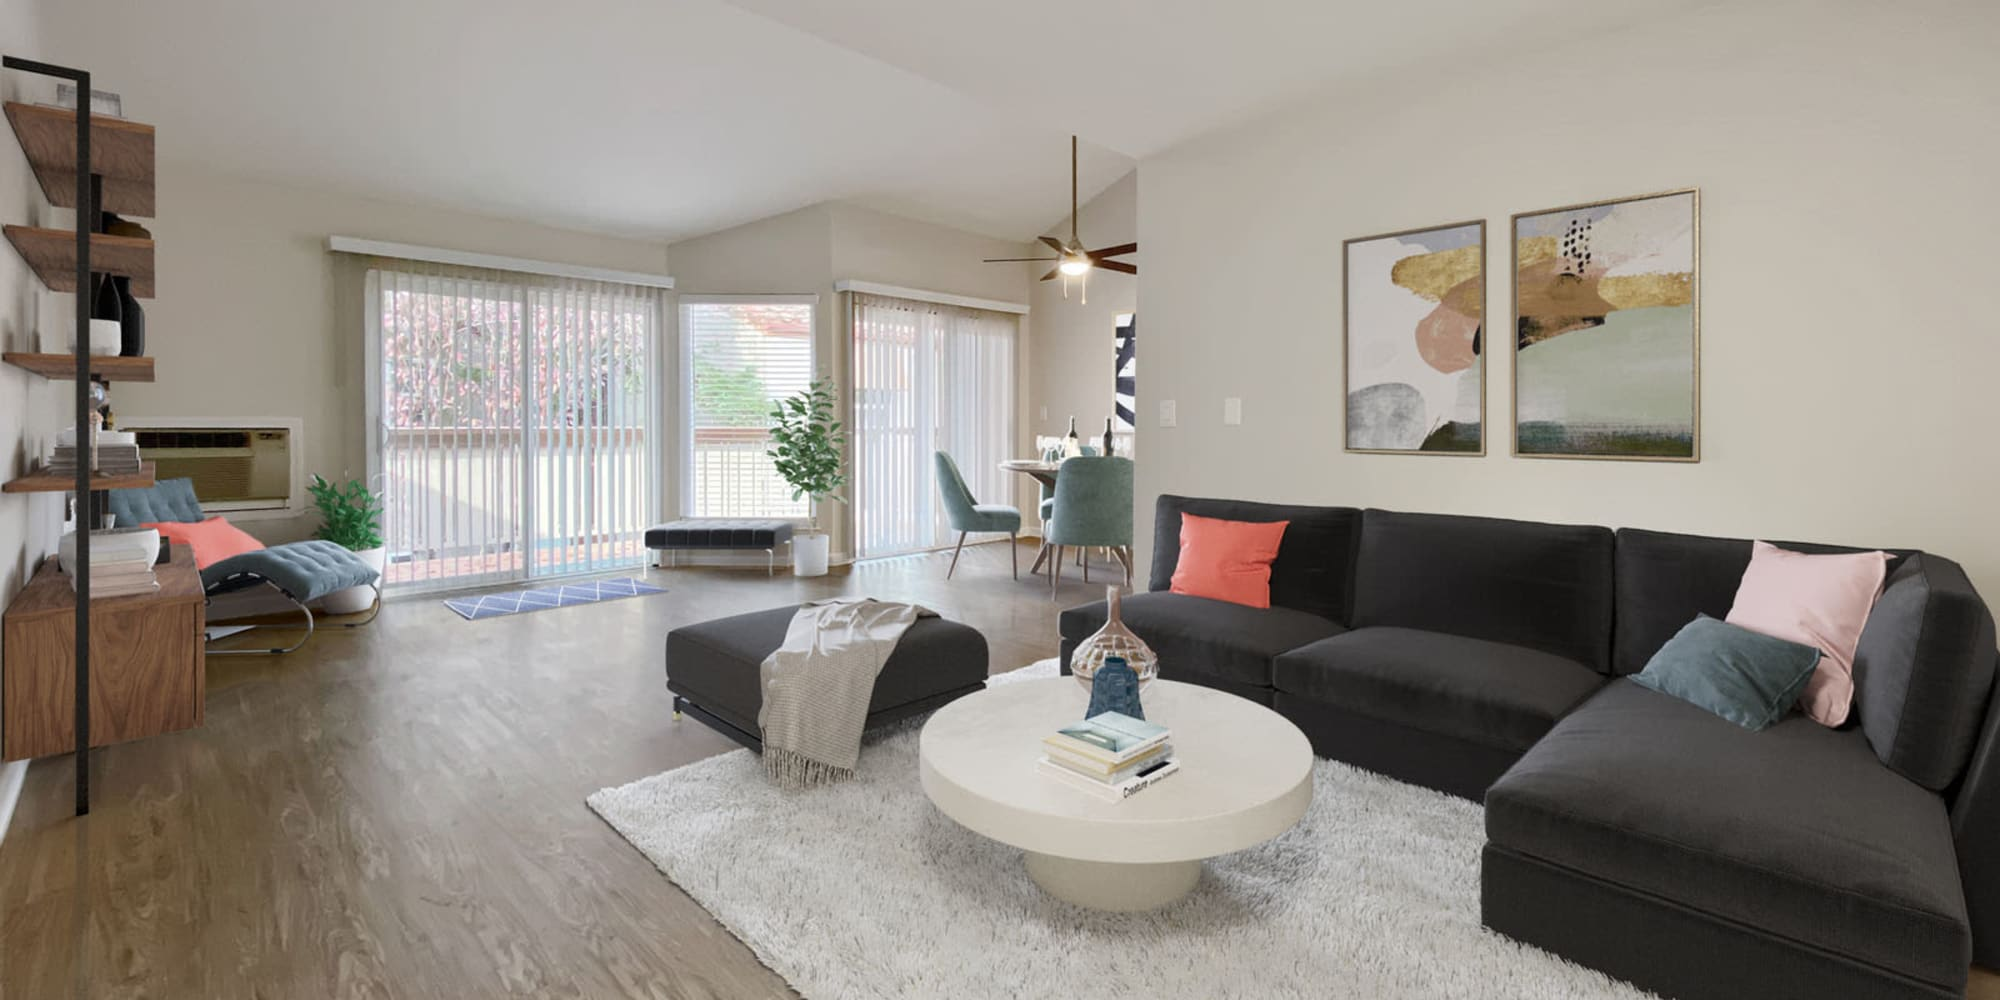 Modern furnishings in the open-concept living area of a model home at Valley Plaza Villages in Pleasanton, California